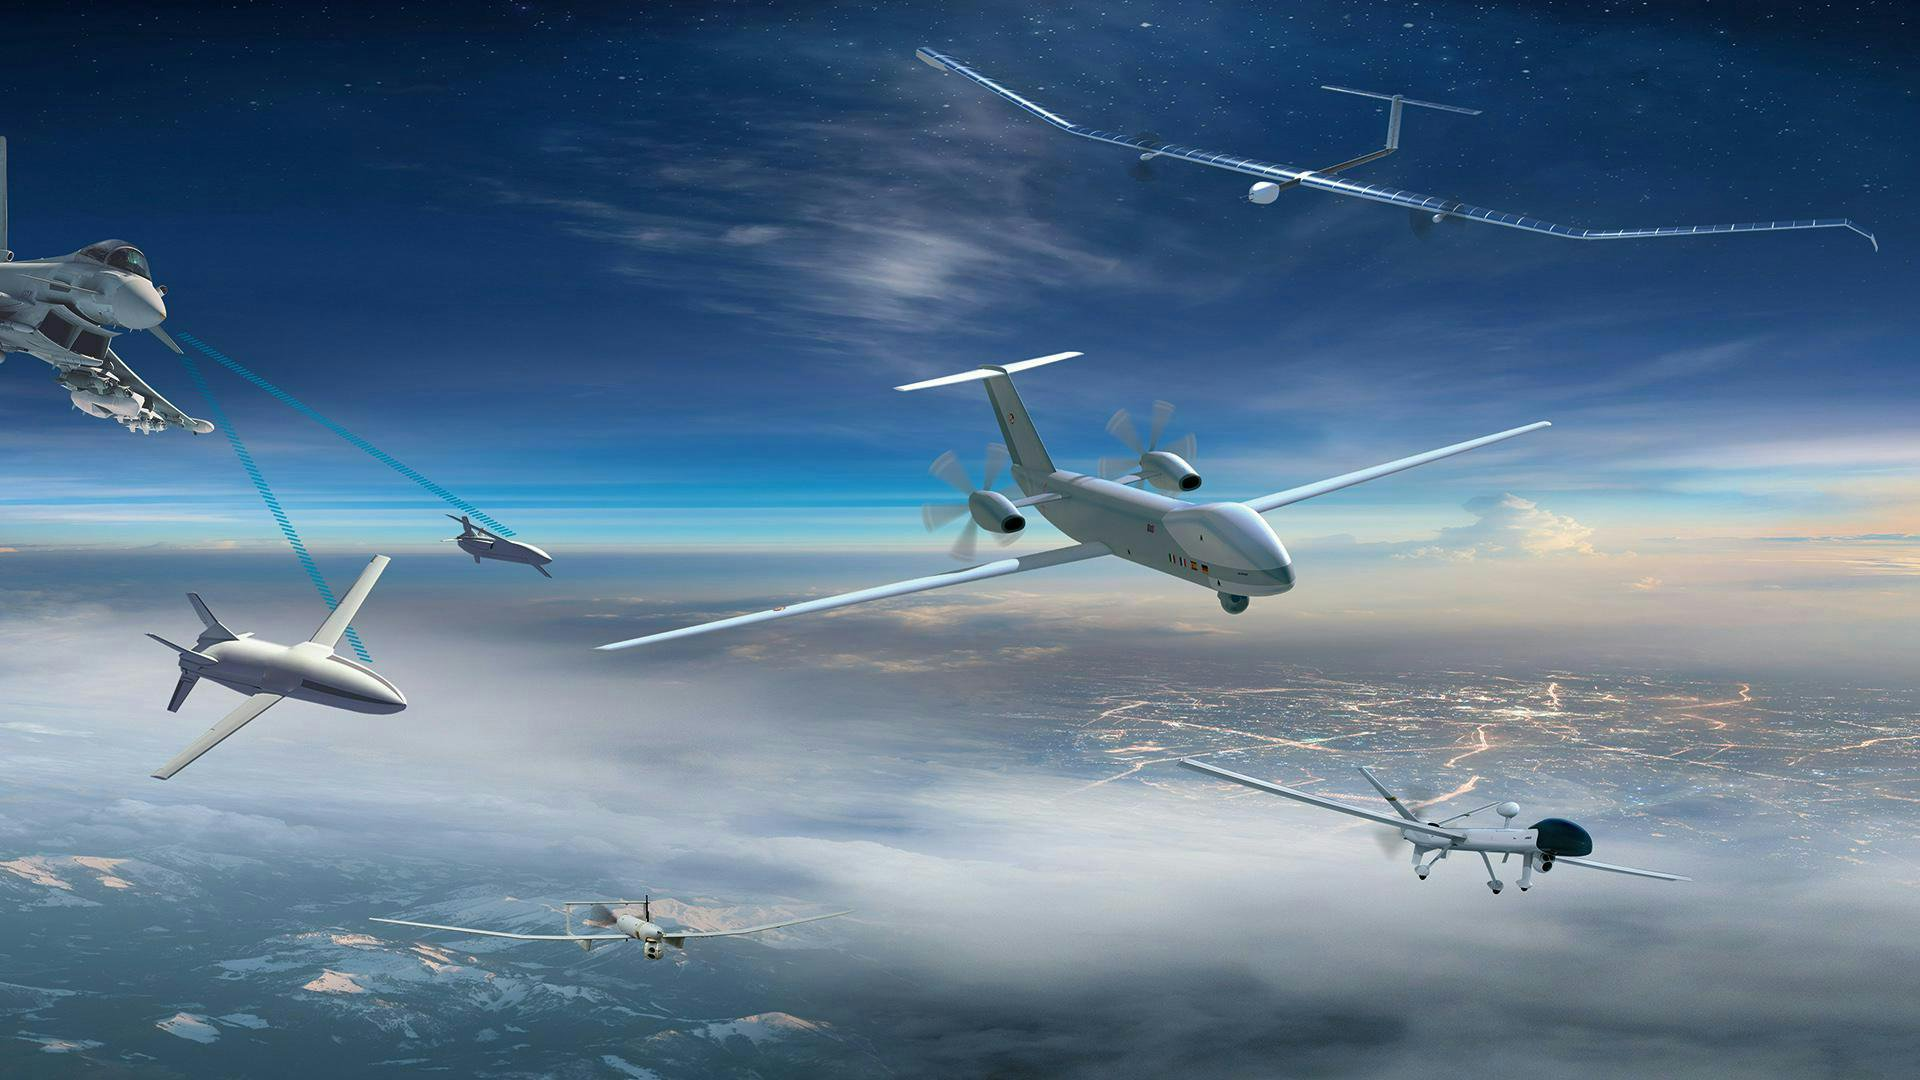 This distributed network of intelligence connects unmanned aerial systems, enabling them to act as force multipliers for the manned aircraft.